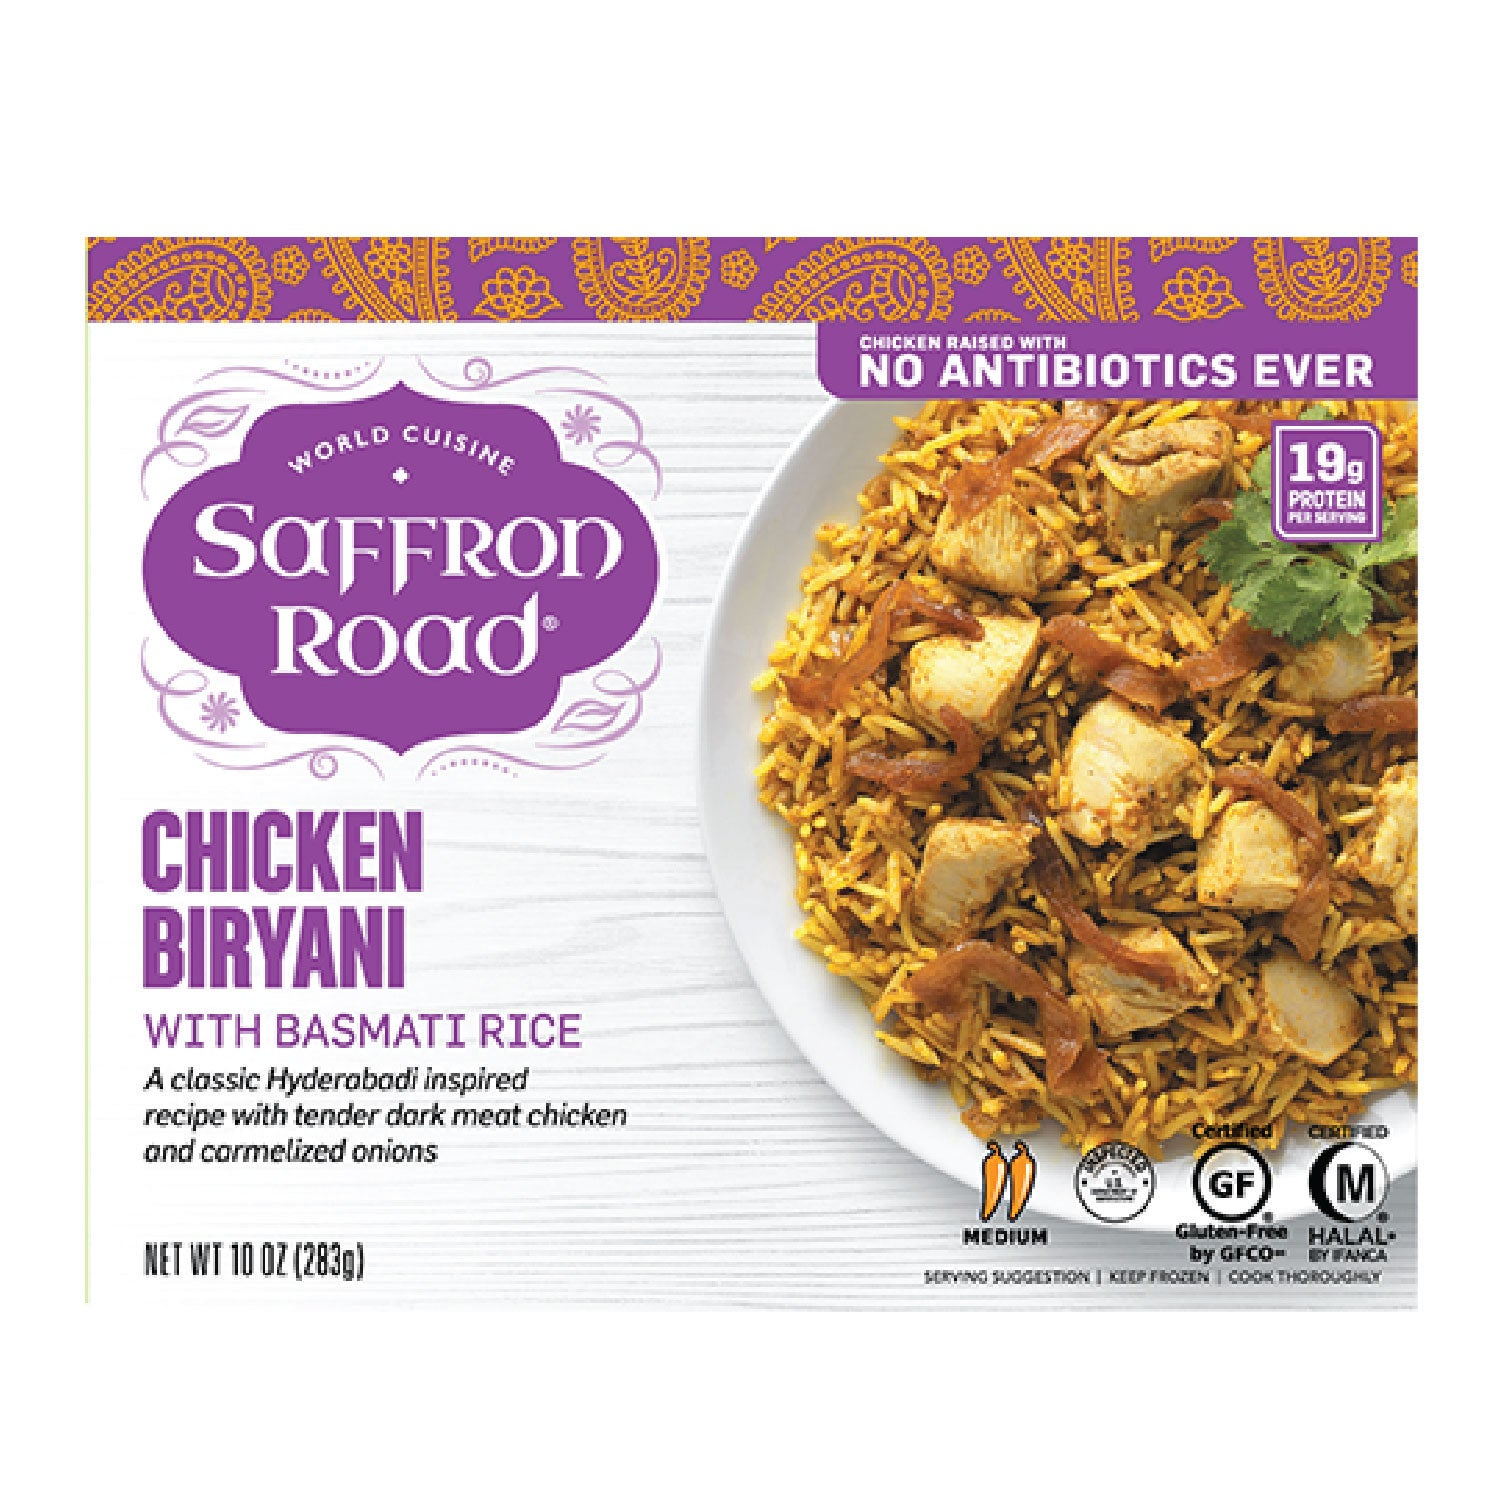 Saffron Road: Chicken Biryani - 10 oz.